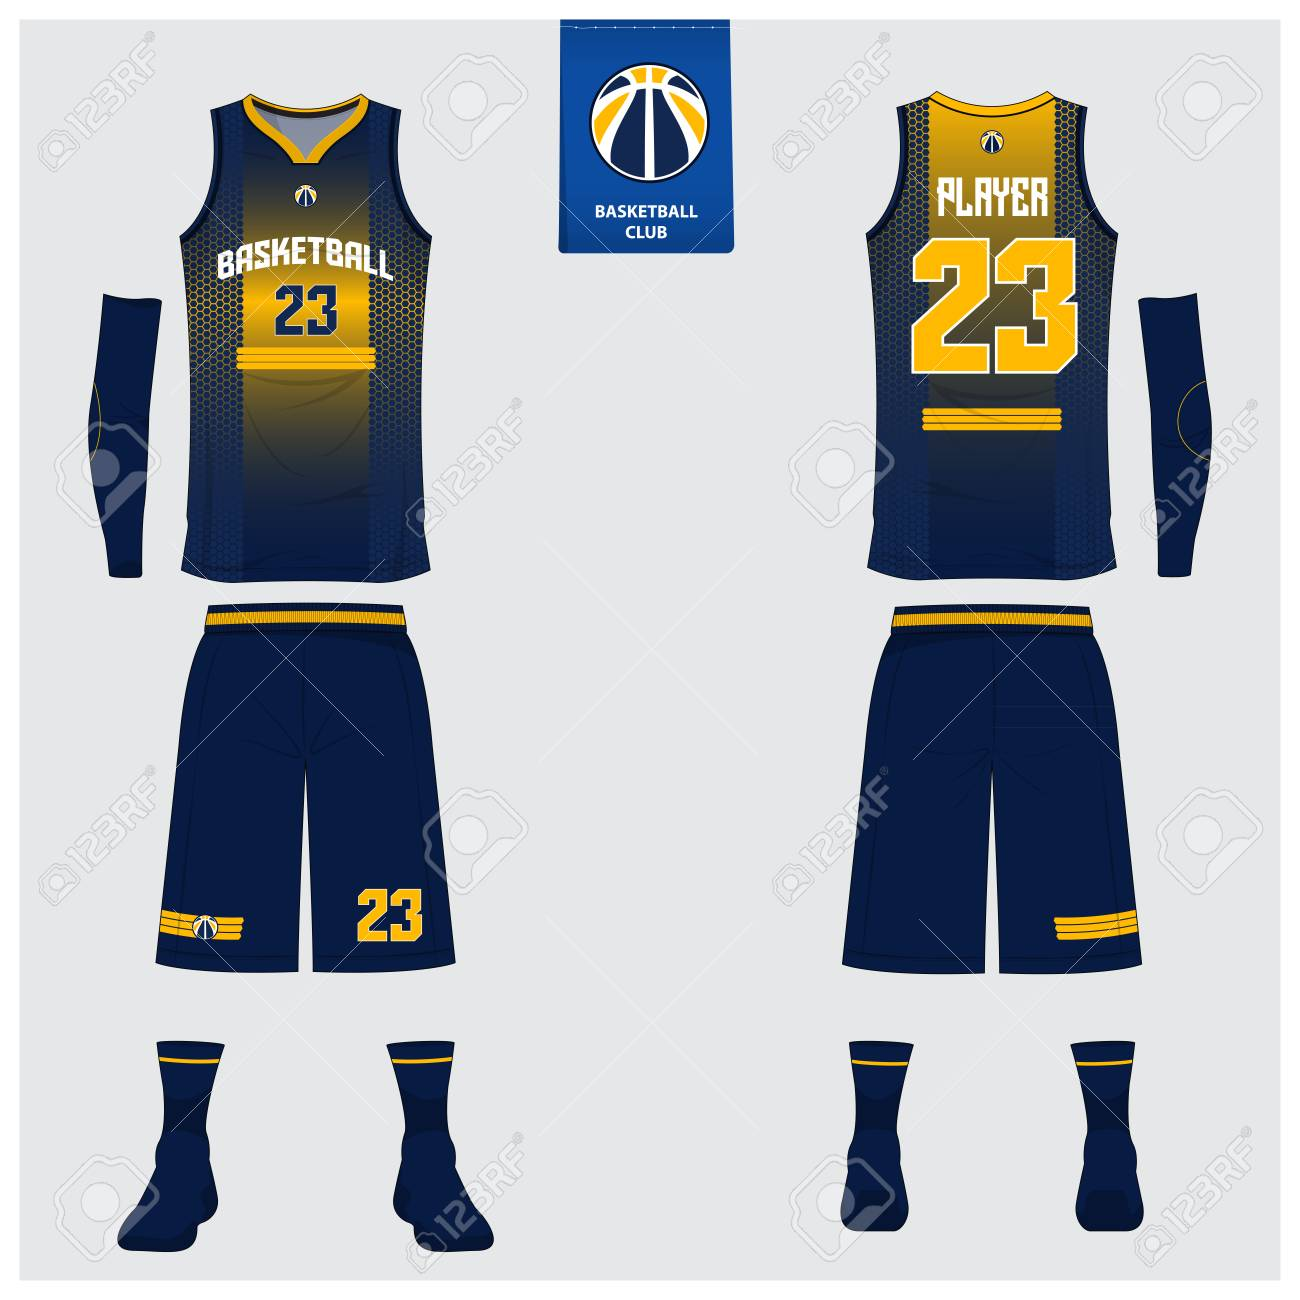 3071075a7d8 Basketball jersey or sport uniform template design for basketball club.  Front and back view sport